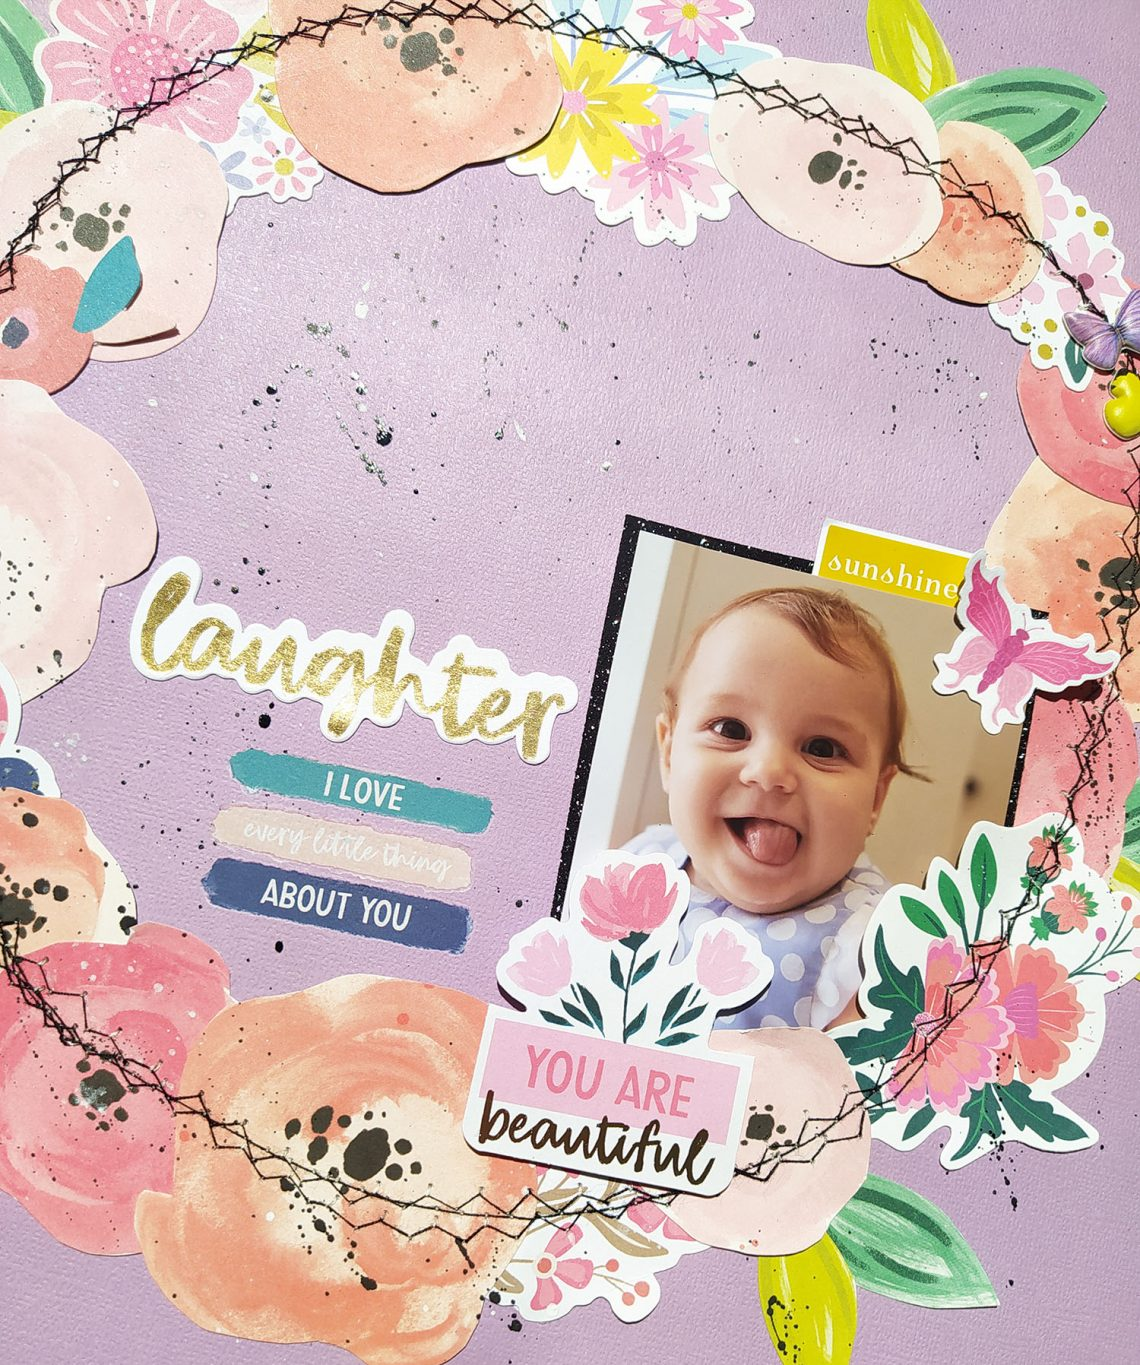 Laughter layout